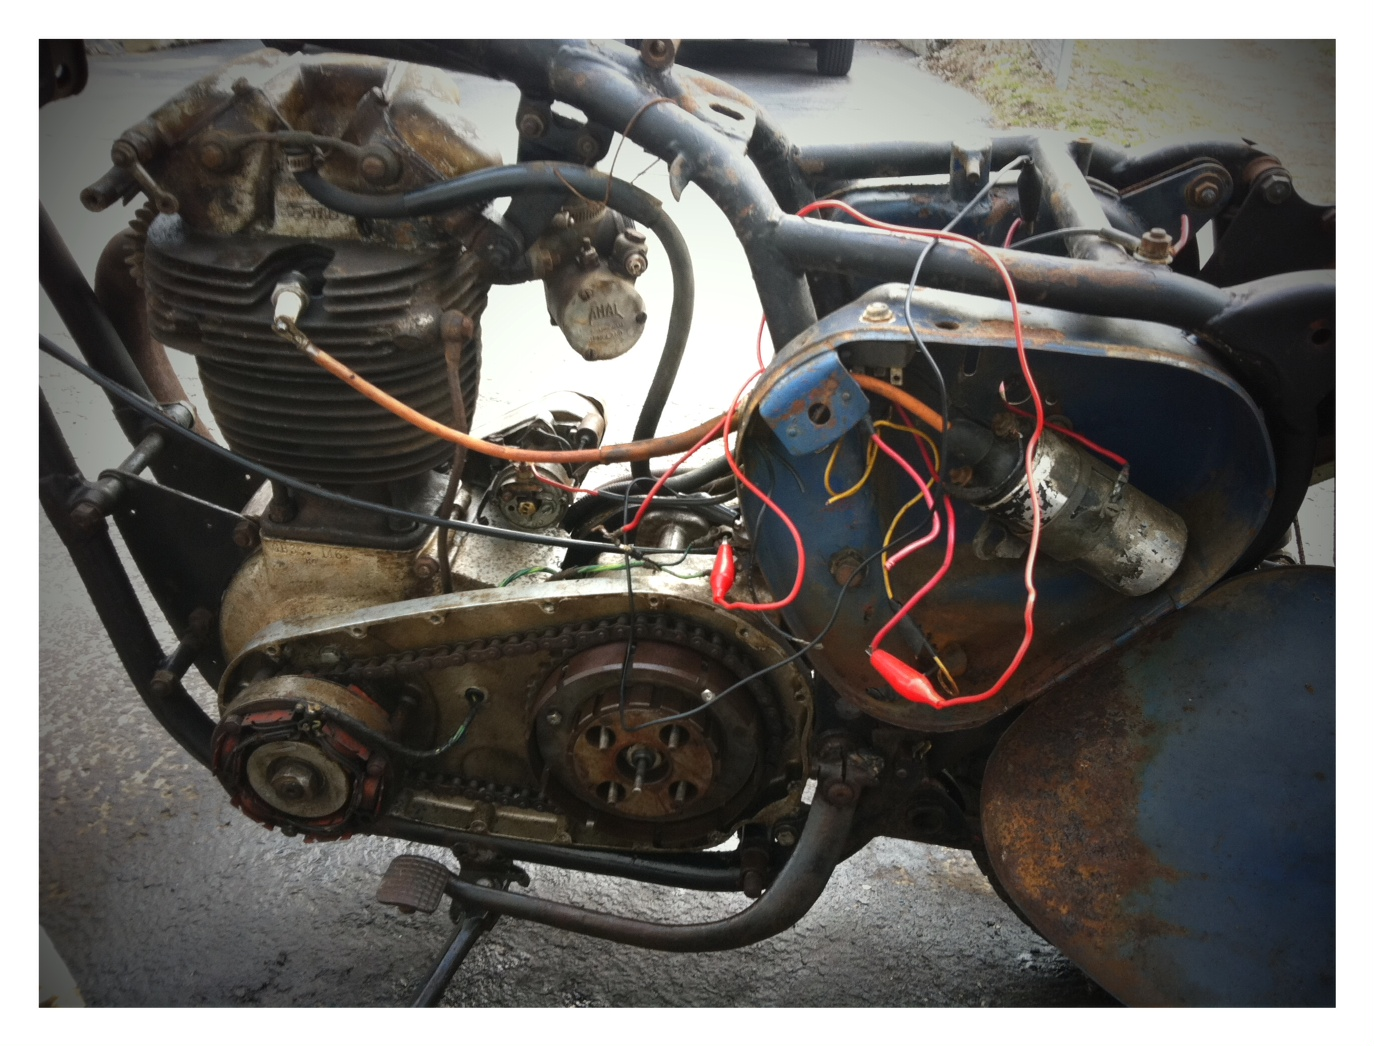 Light Wiring Diagram 3 Wire On Motorcycle Tail Light Wiring Diagram